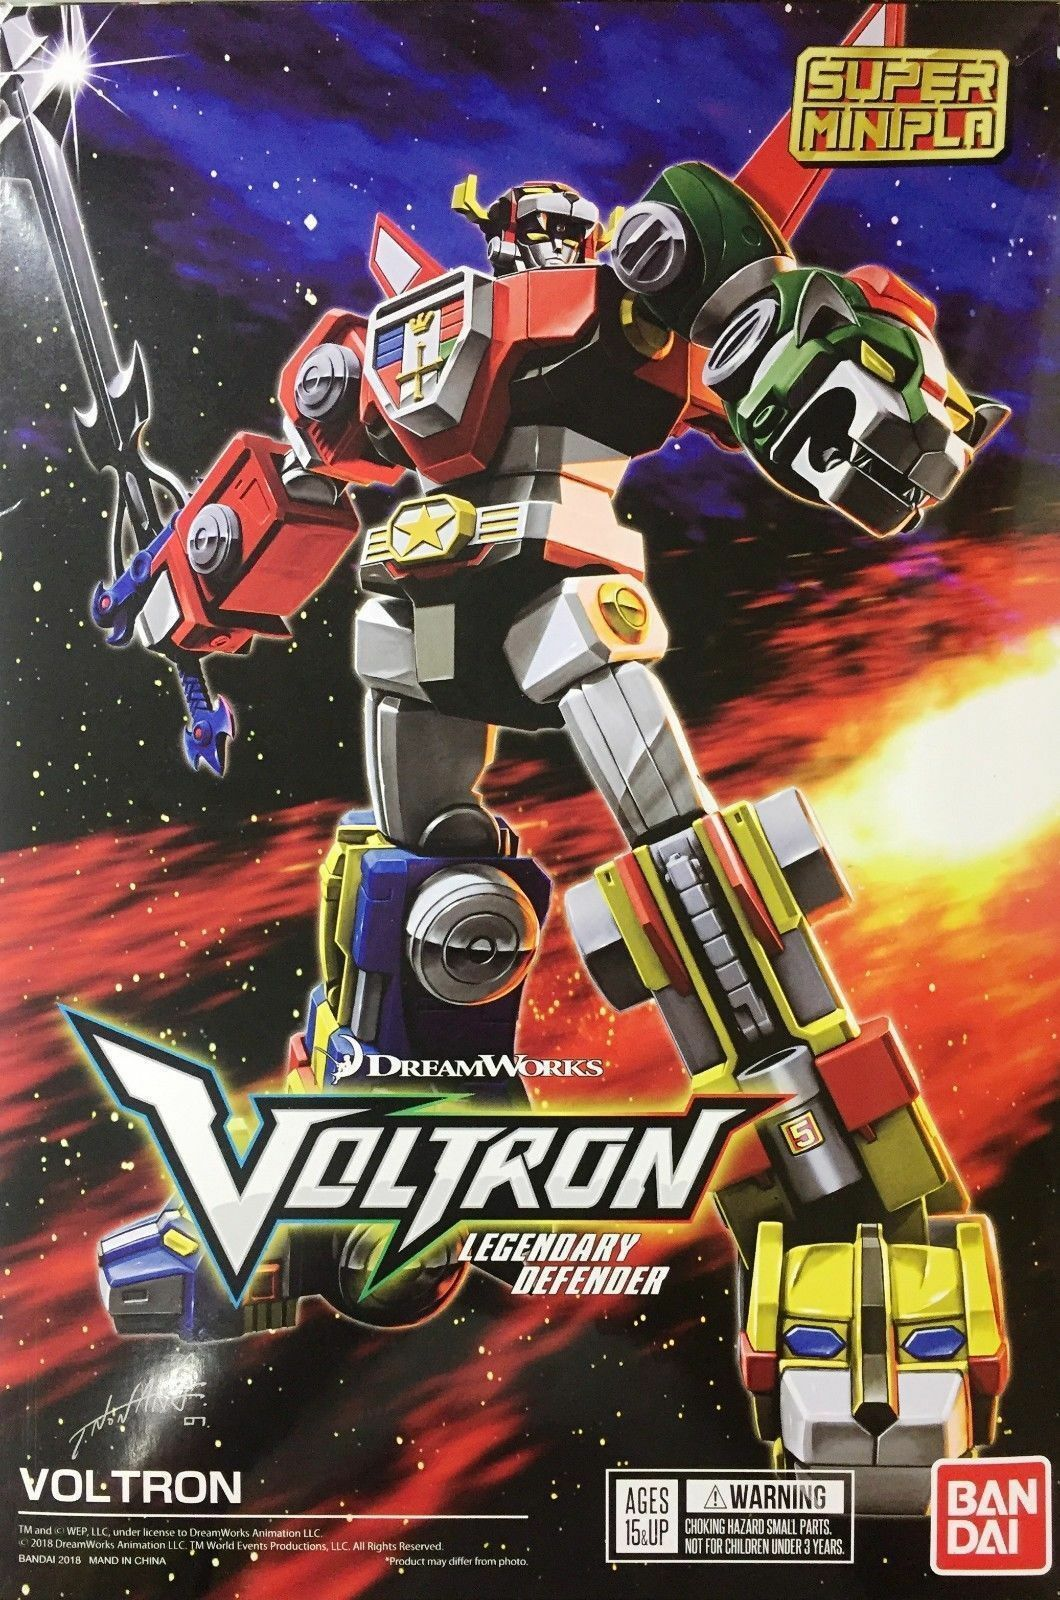 VOLTRON Golion Lionbot Snap Kit SUPER MINI PLA Legendary Defender Roboter BANDAI